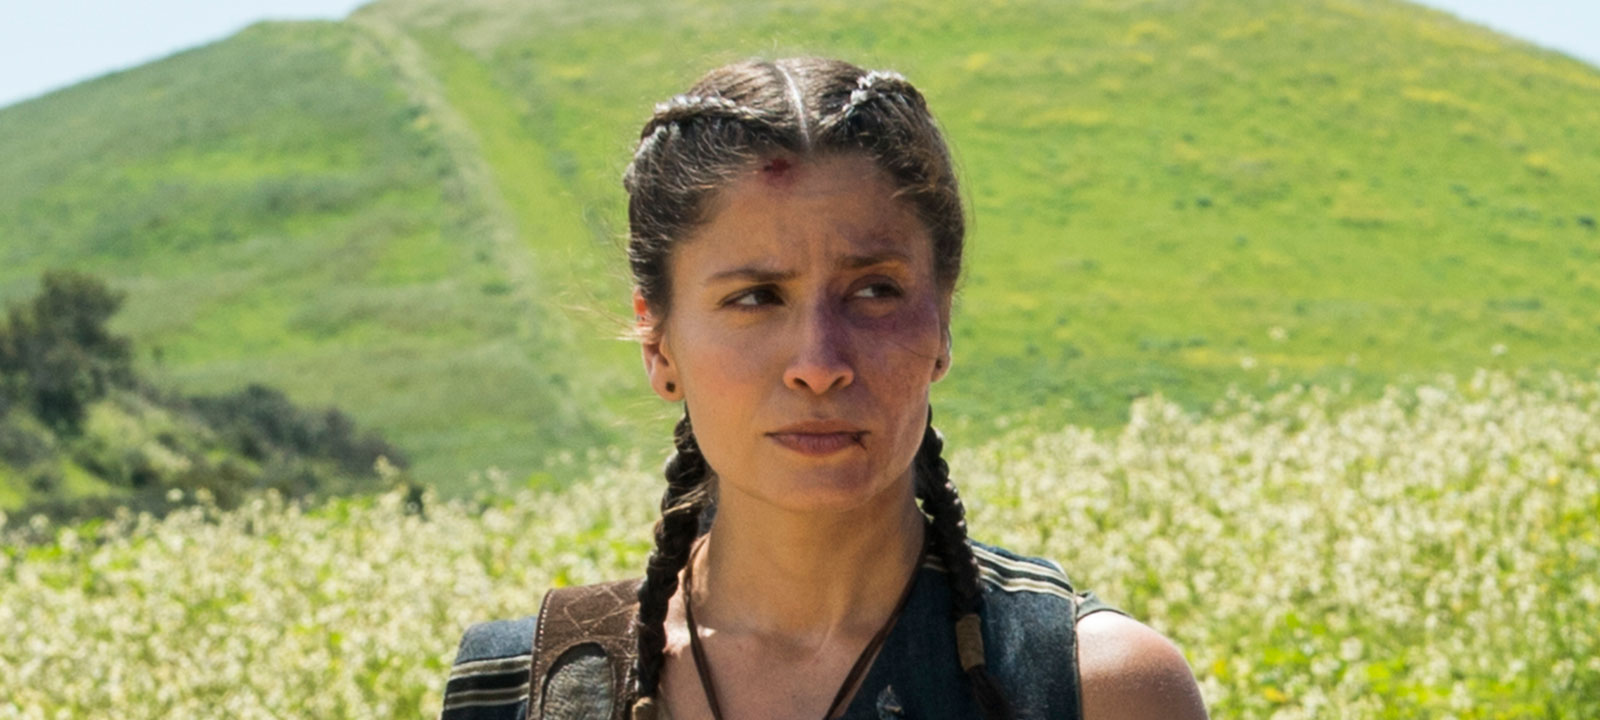 fear-the-walking-dead-episode-308-ofelia-mason-800X600-interview